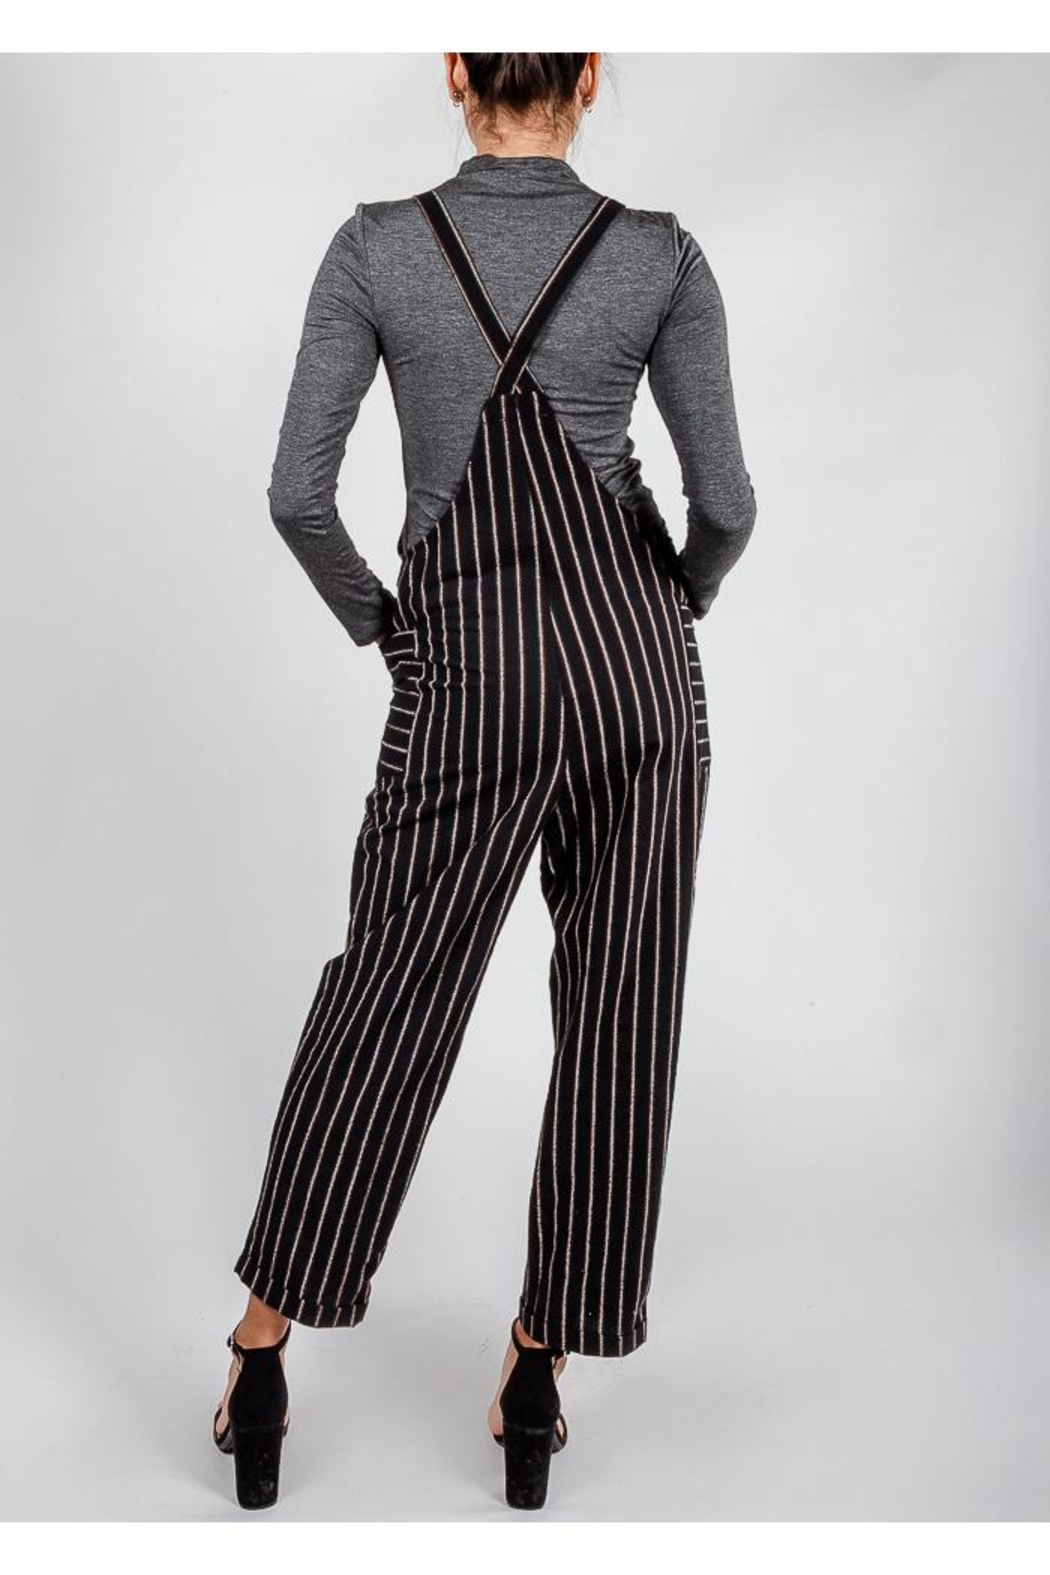 All In Favor Black Striped Slouchy-Overalls - Back Cropped Image